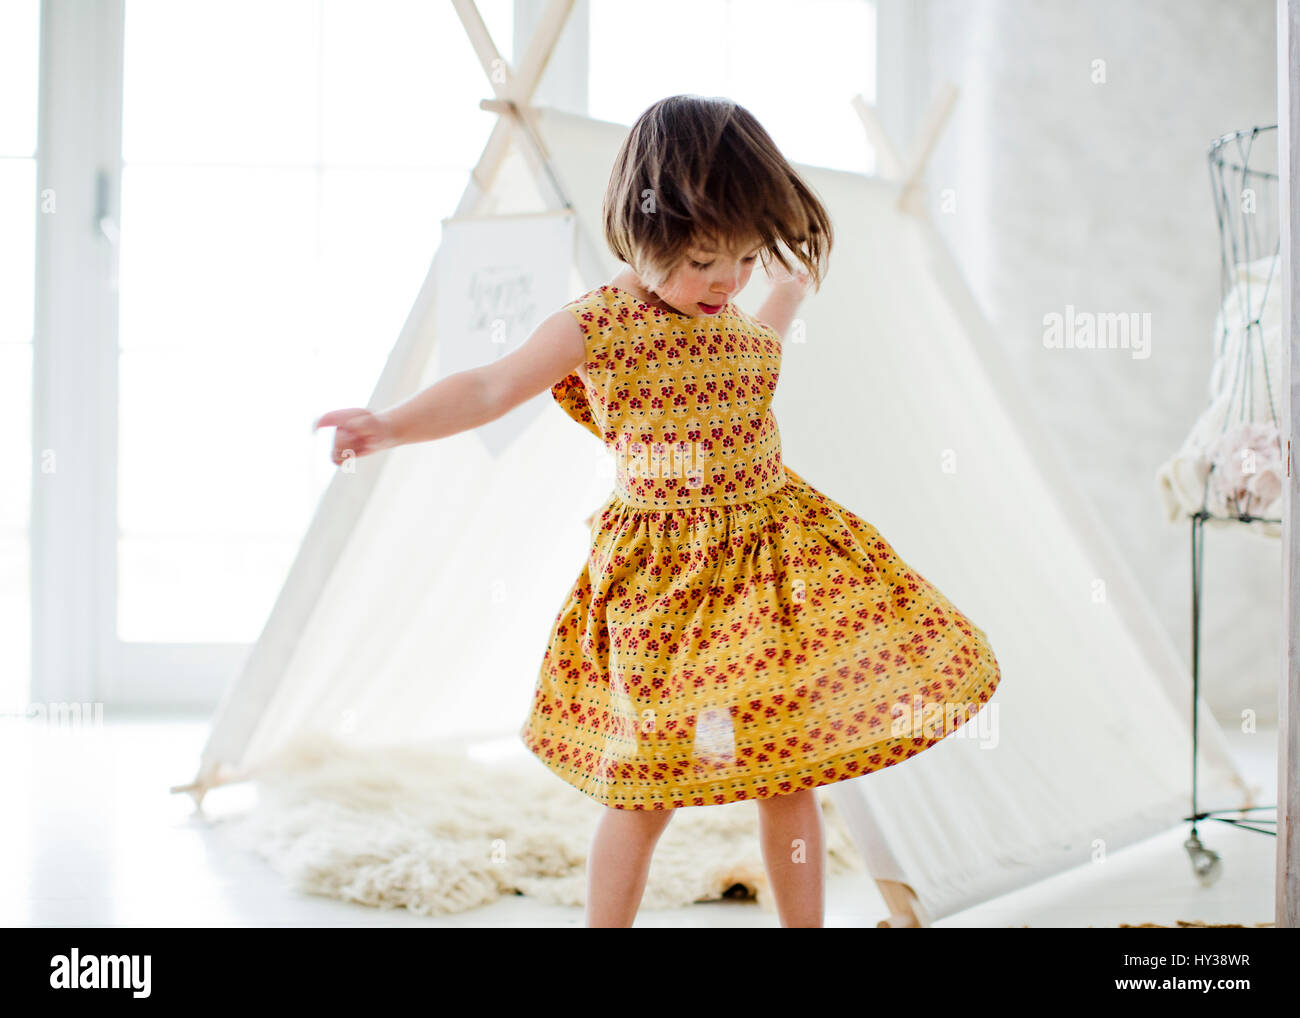 Sweden, Girl (4-5) dancing next to tent at home - Stock Image